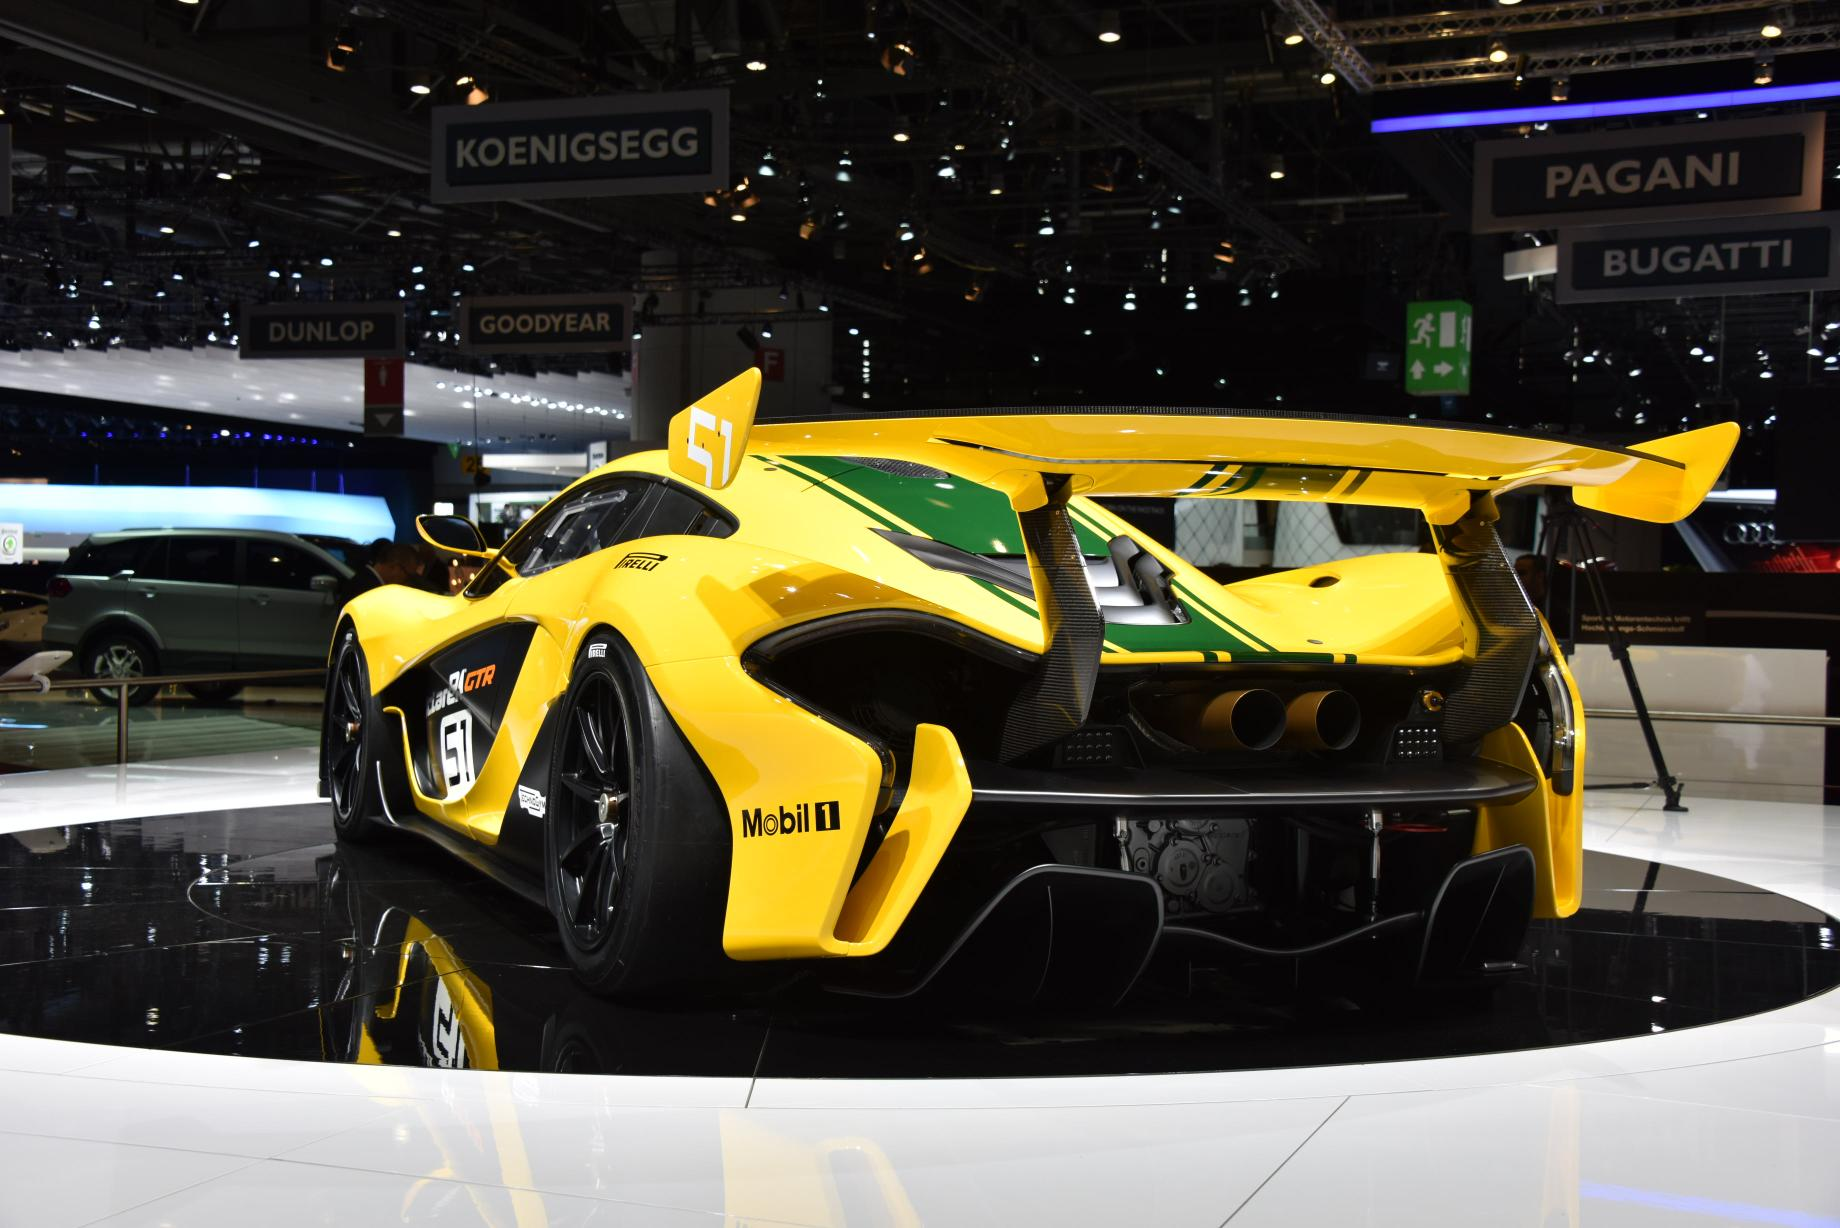 Mclaren Gtr Race Car Debuts At The Geneva Motor Show